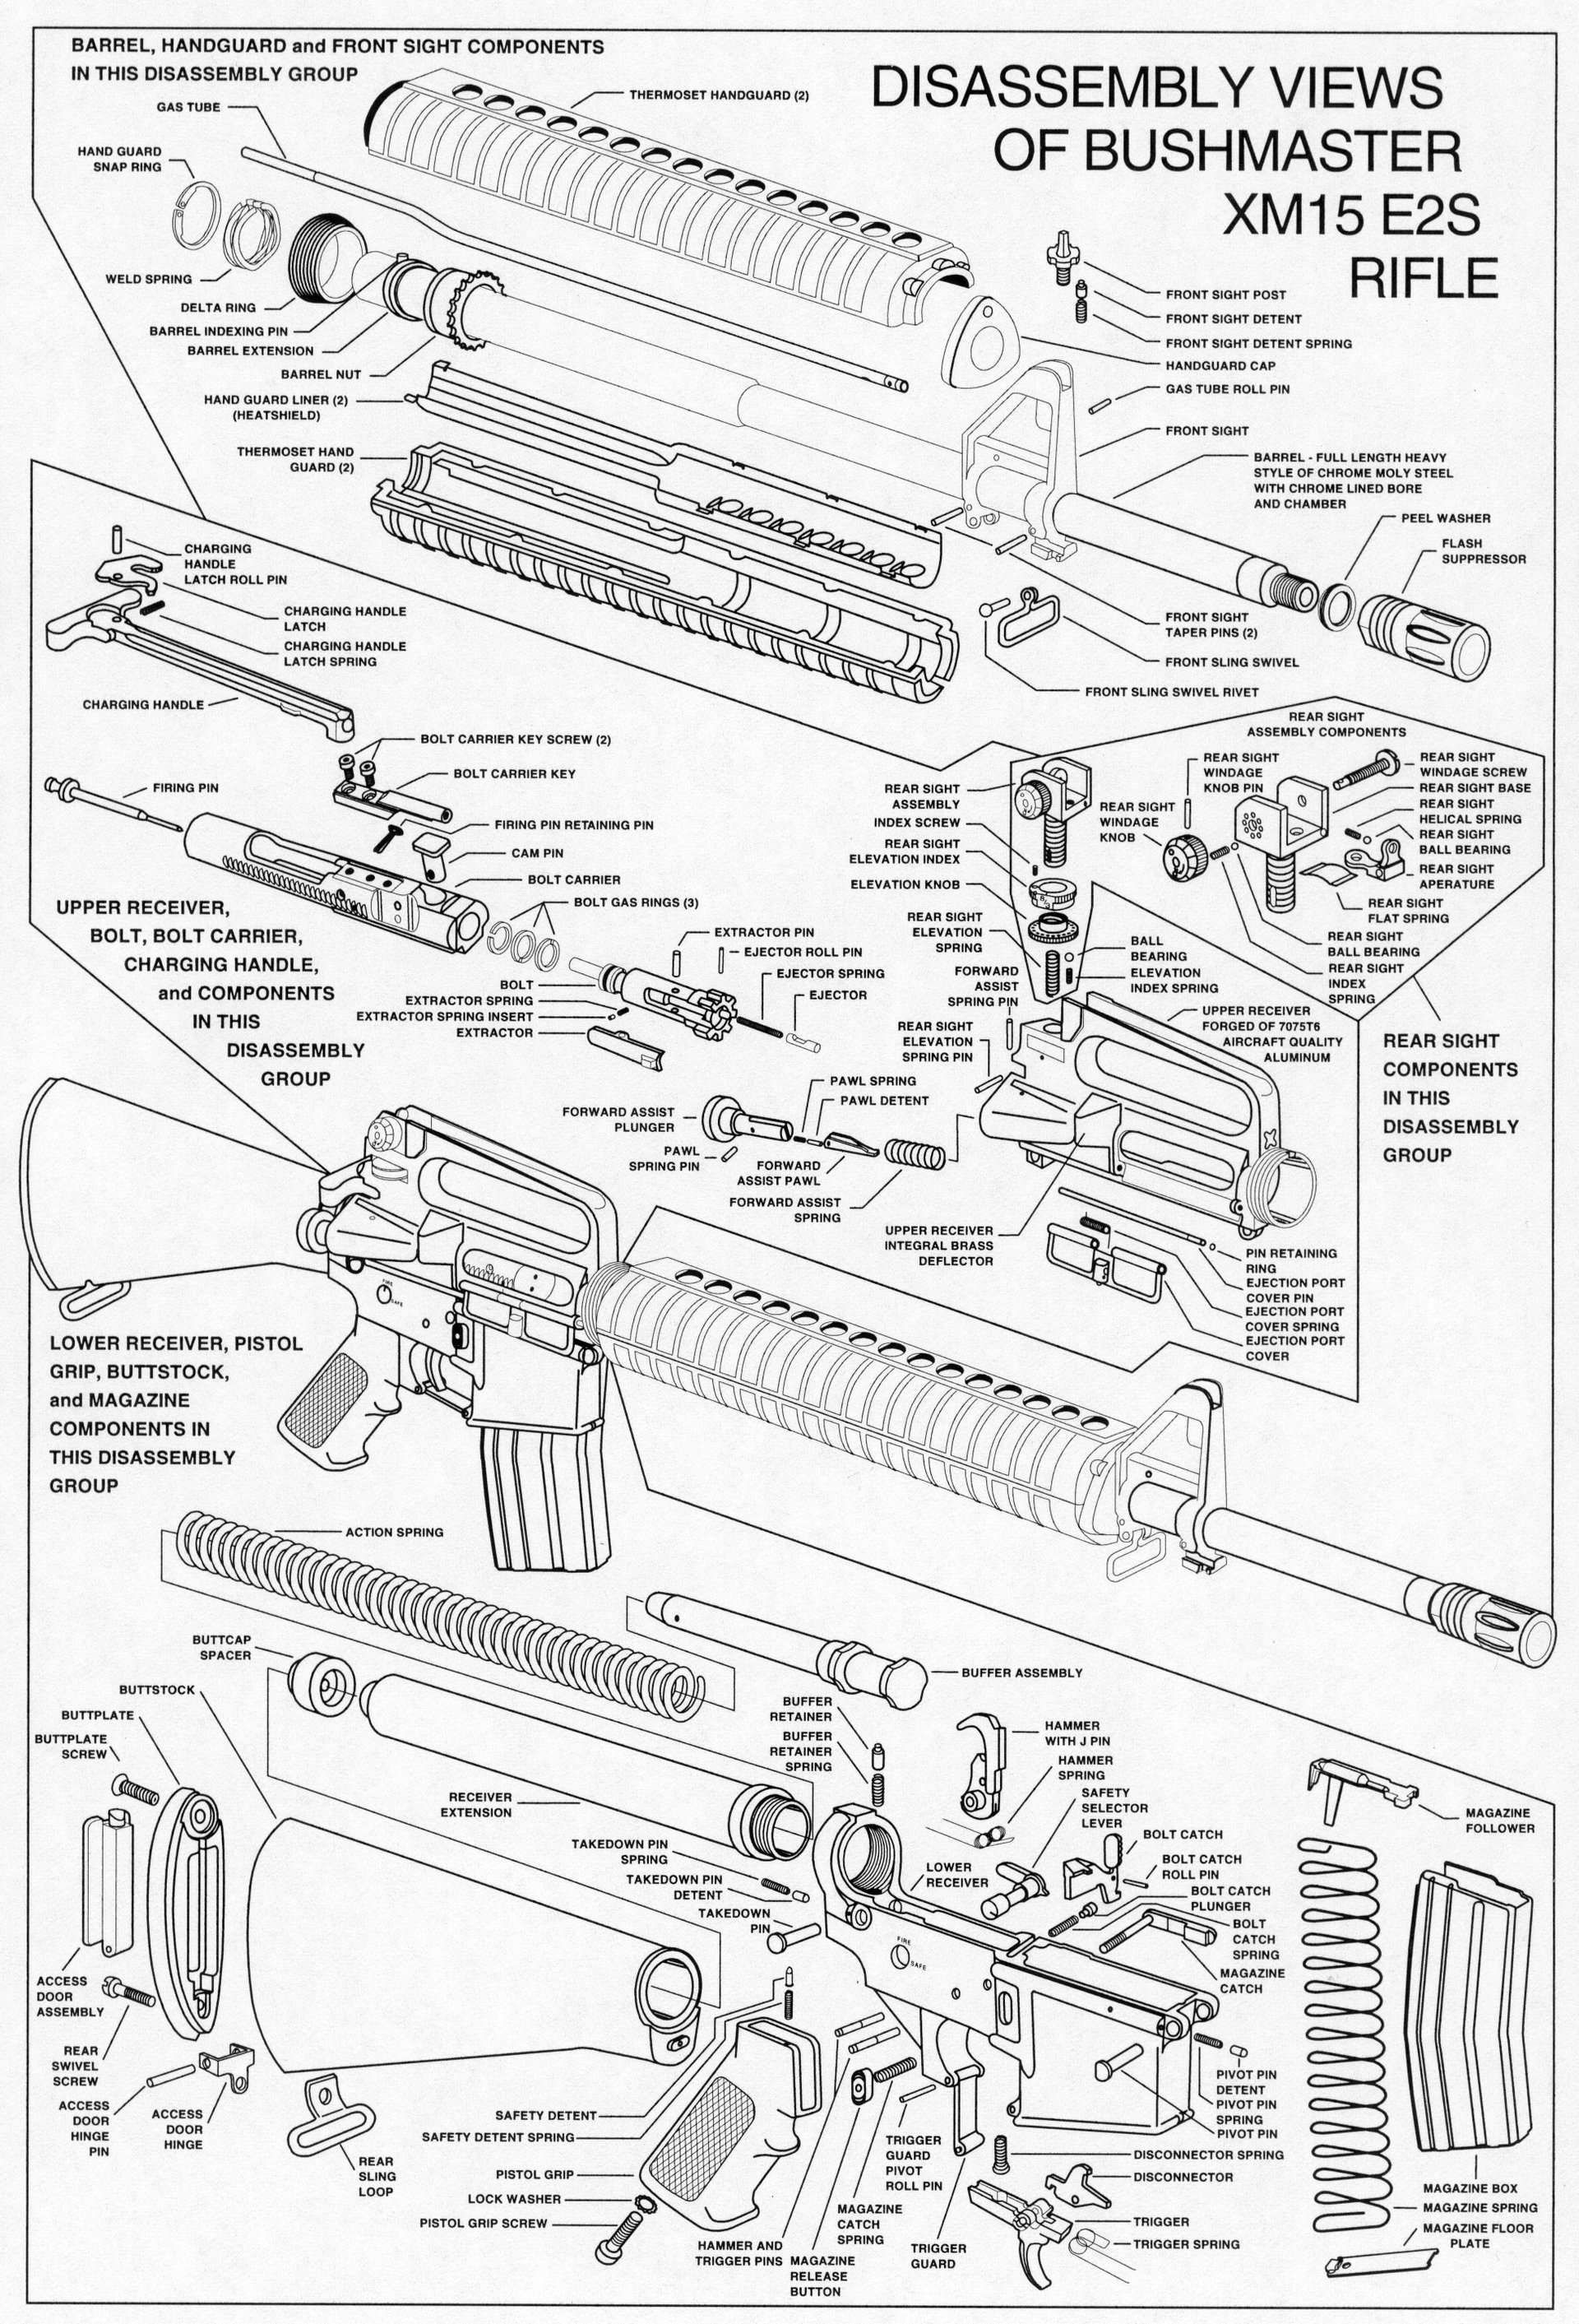 exploded ar 15 parts diagram ar 15 pinterest guns firearms rh pinterest com ar 15 parts diagram ar 15 parts diagram mat